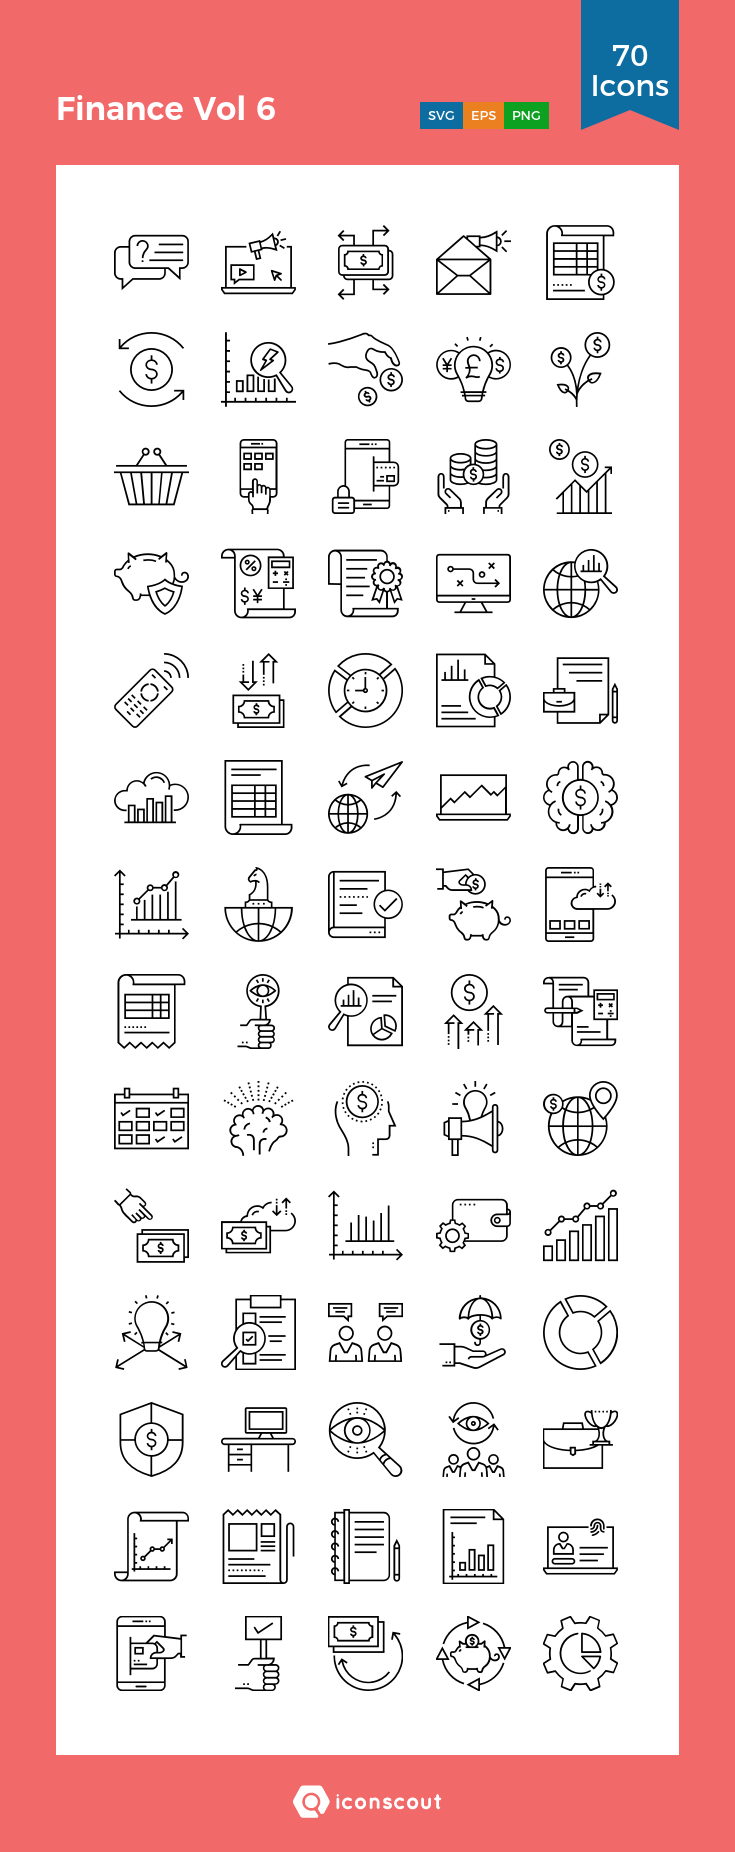 Finance Vol 6  Icon Pack - 70 Line Icons